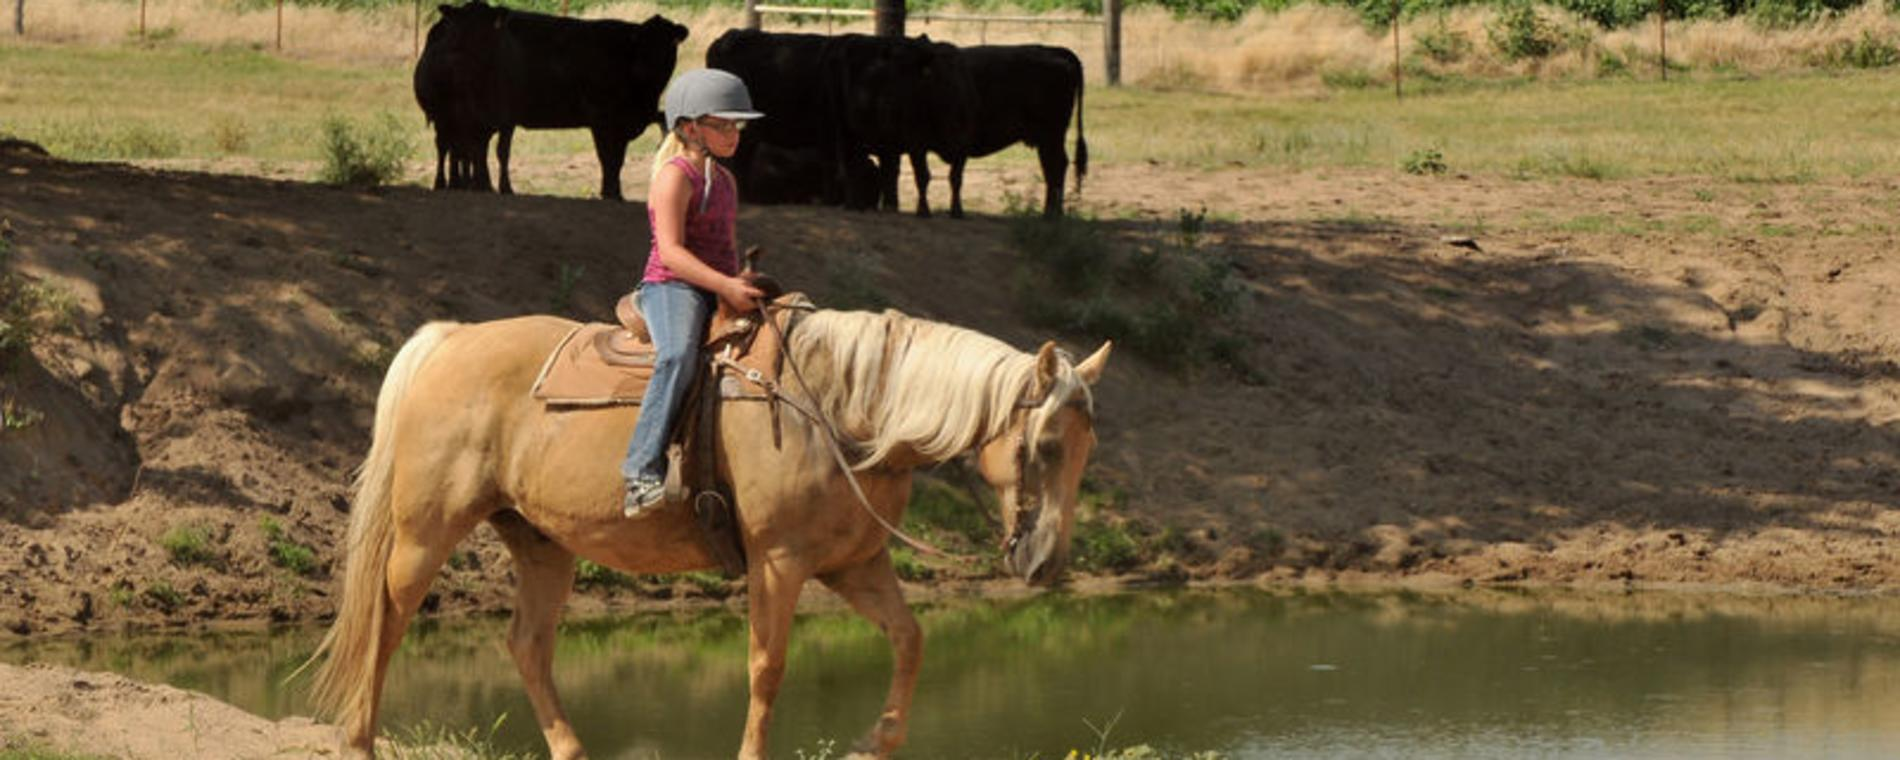 All ages can ride horses at C-Arrow Stables